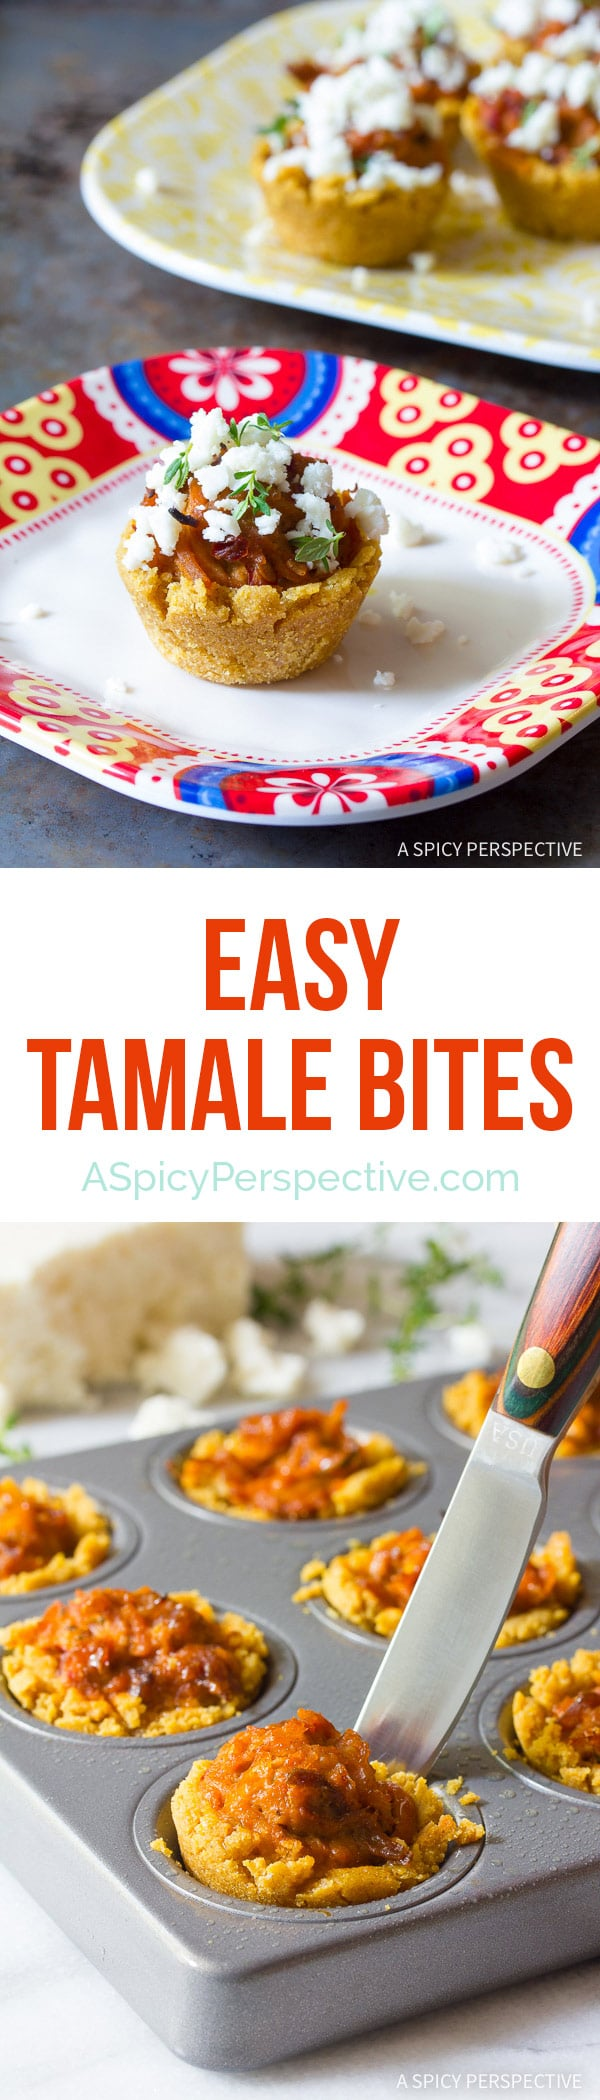 Easy to Make Tamale Bites Recipe on ASpicyPerspective.com